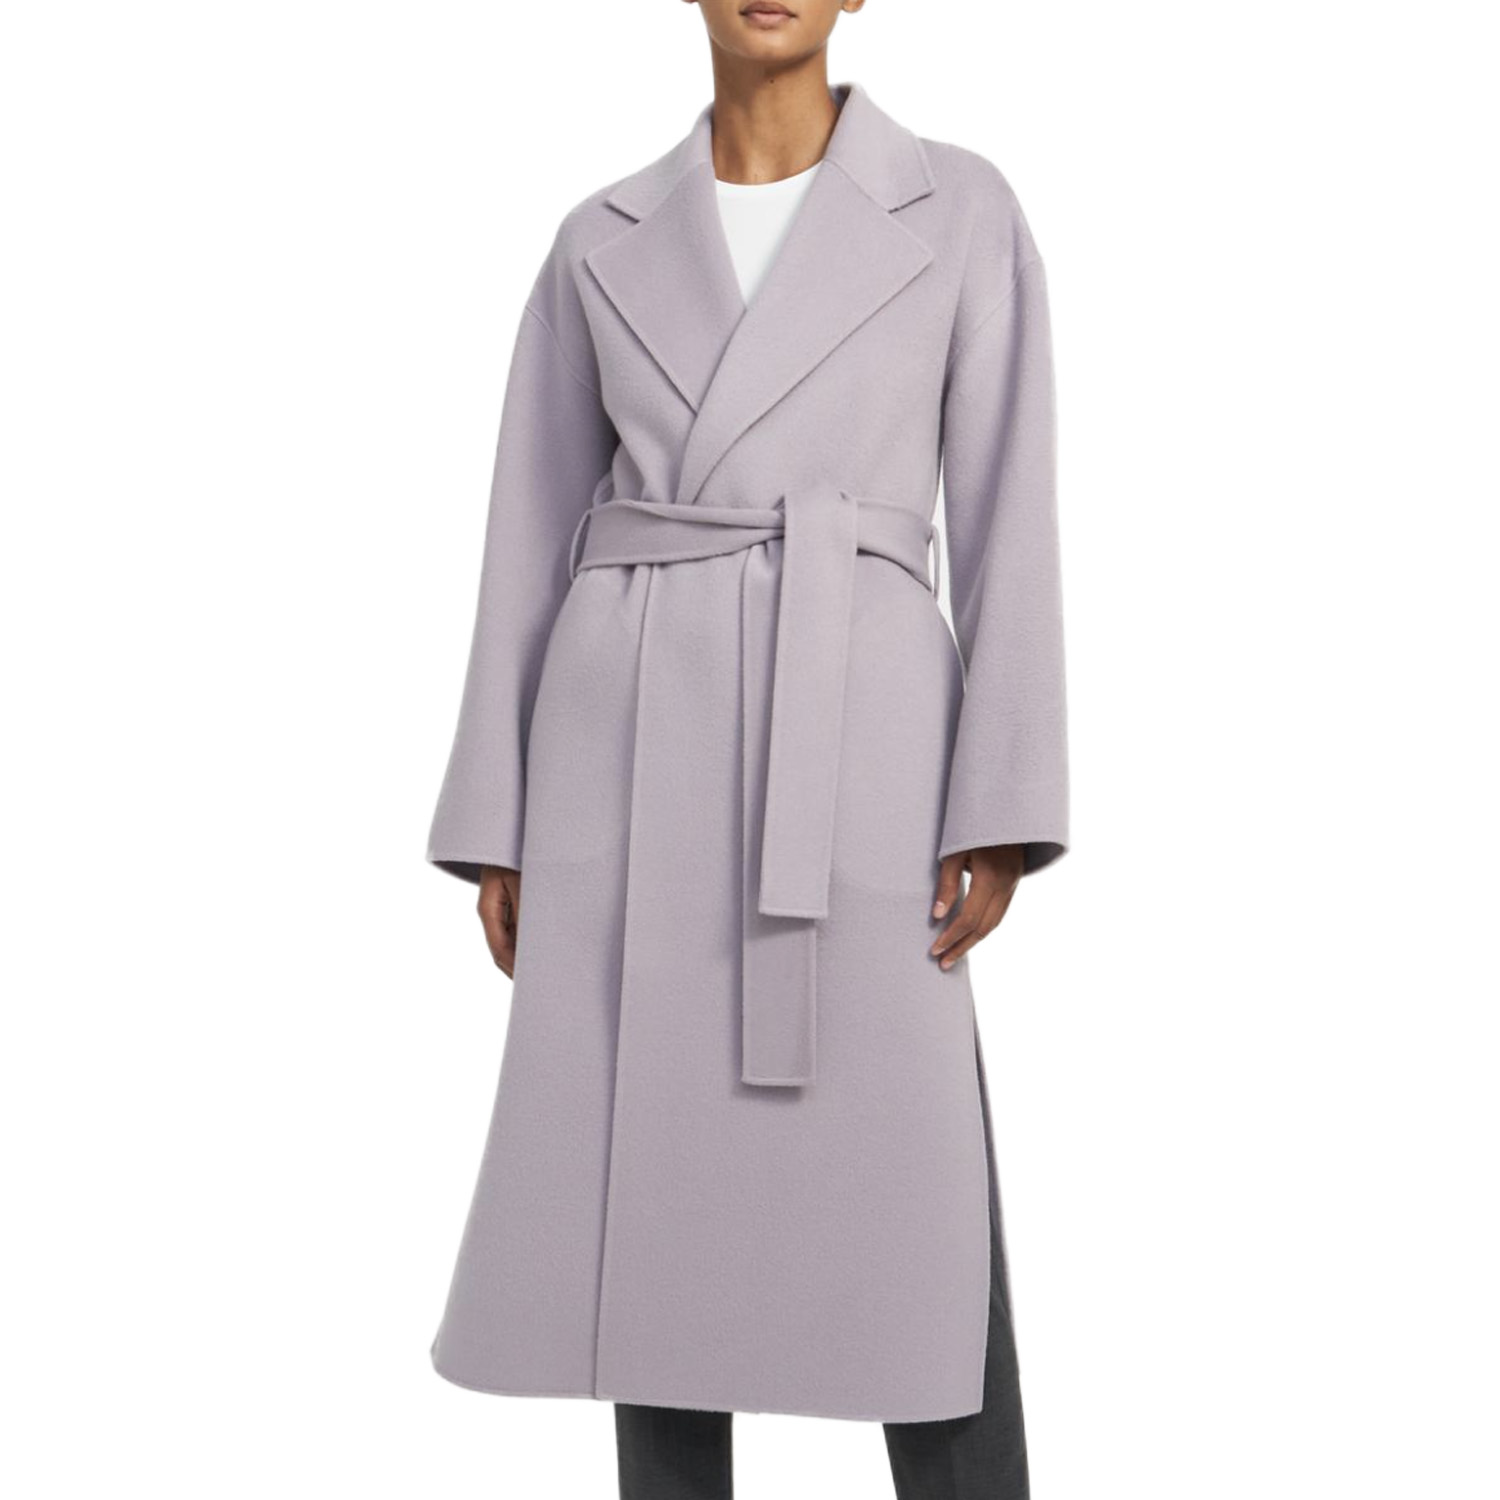 Theory Lavender Coat